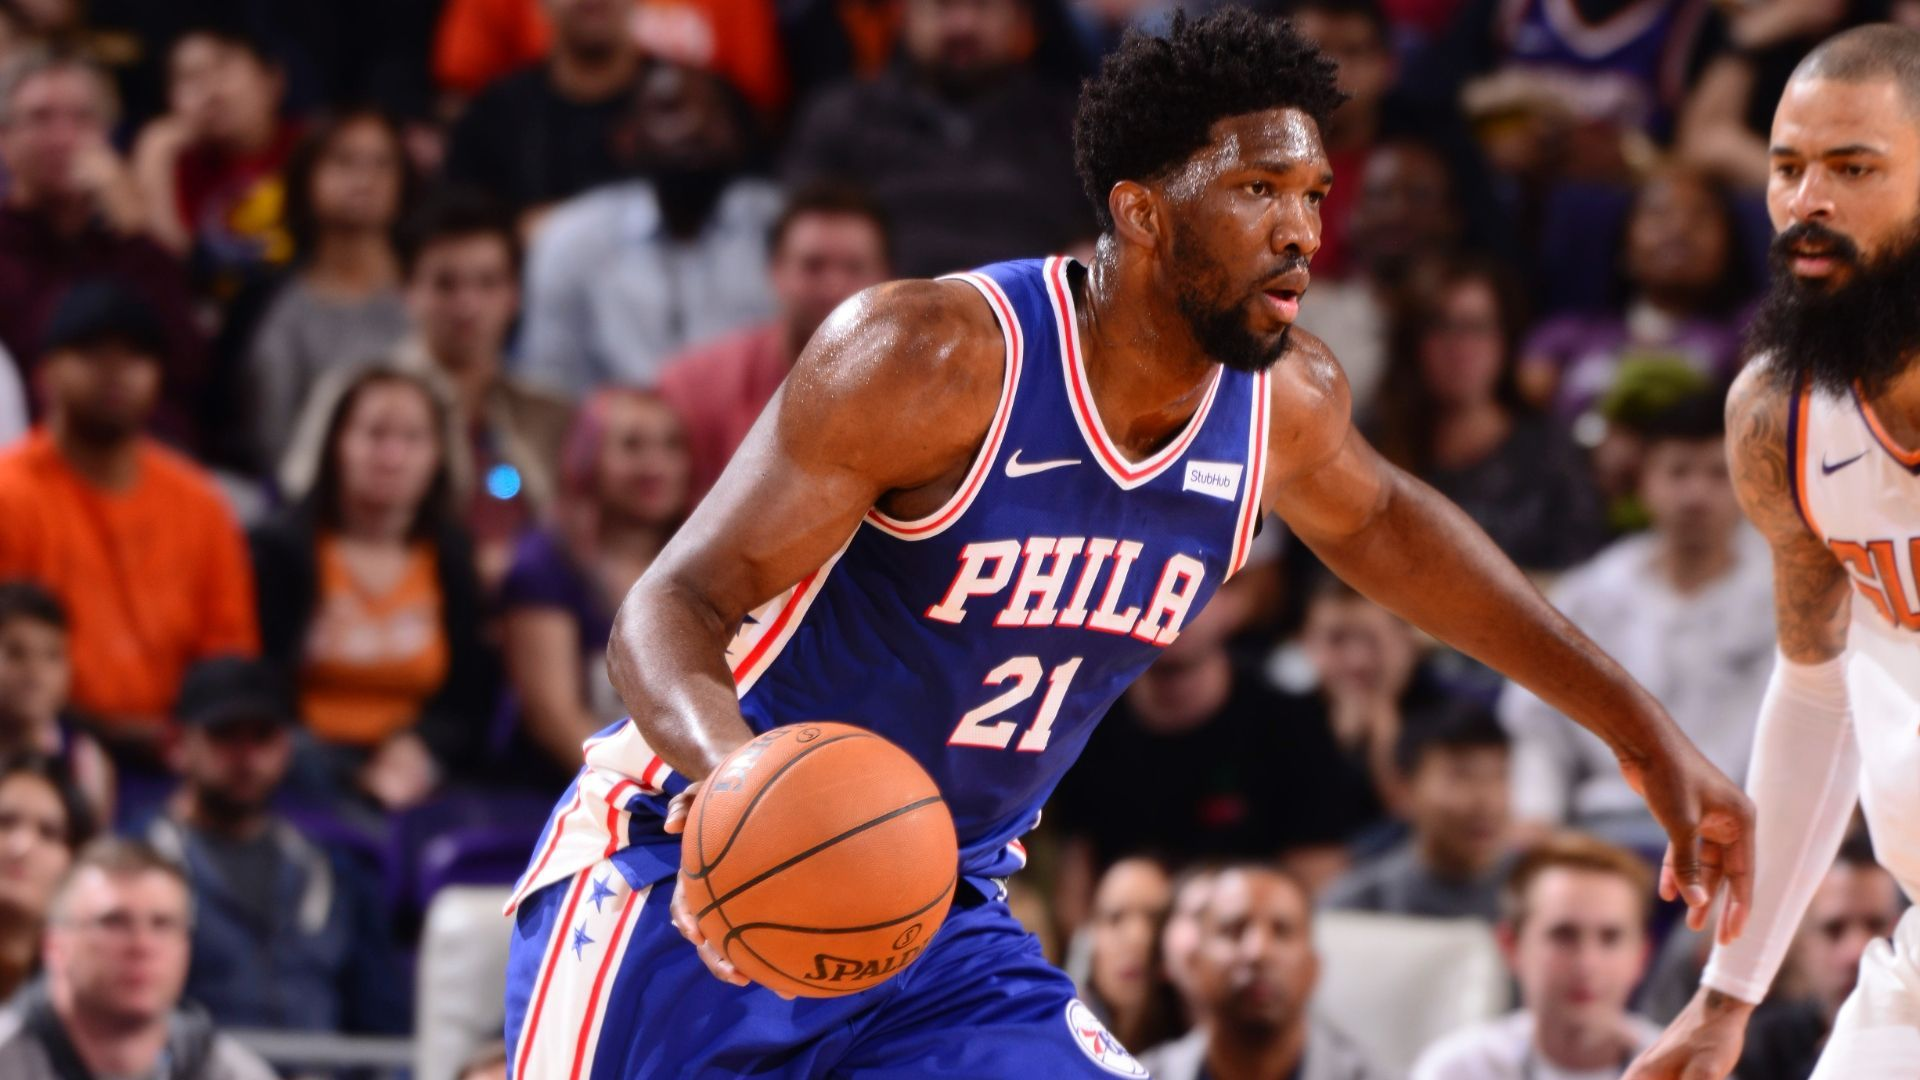 Balanced attack powers 76ers past Suns ESPN Video